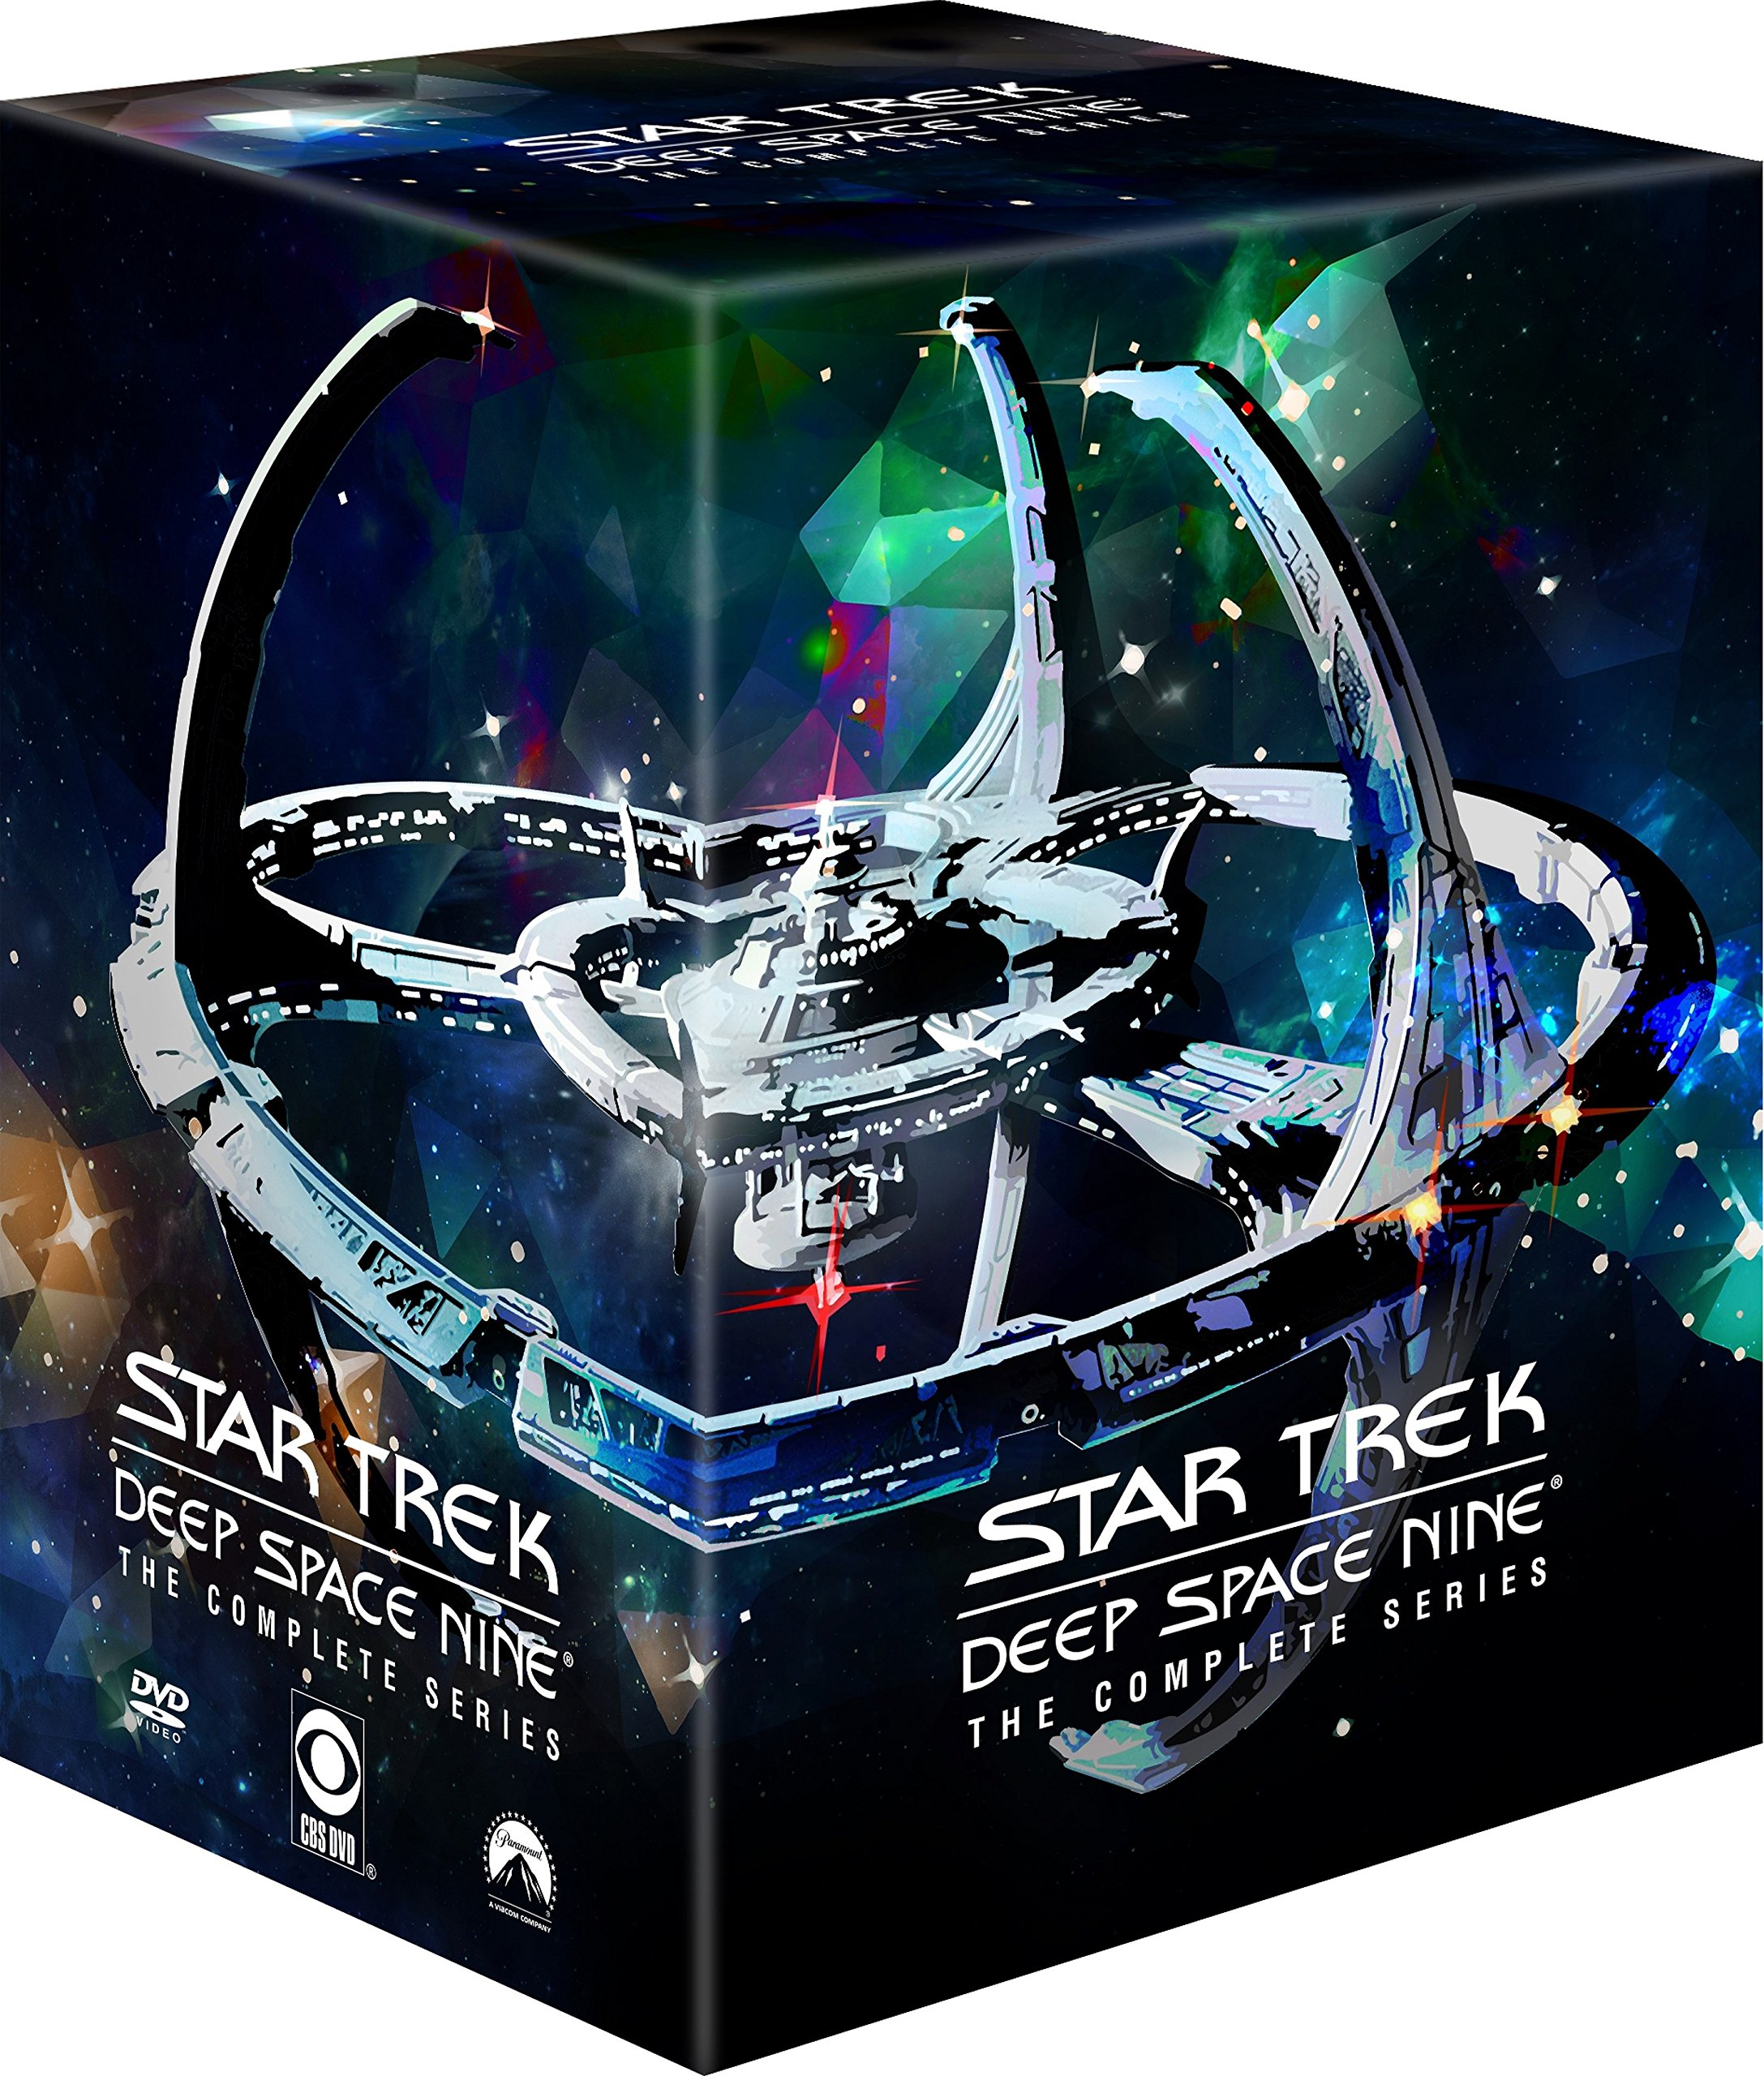 Star Trek:  Deep Space Nine:  The Complete Series by Paramount Home Entertainment